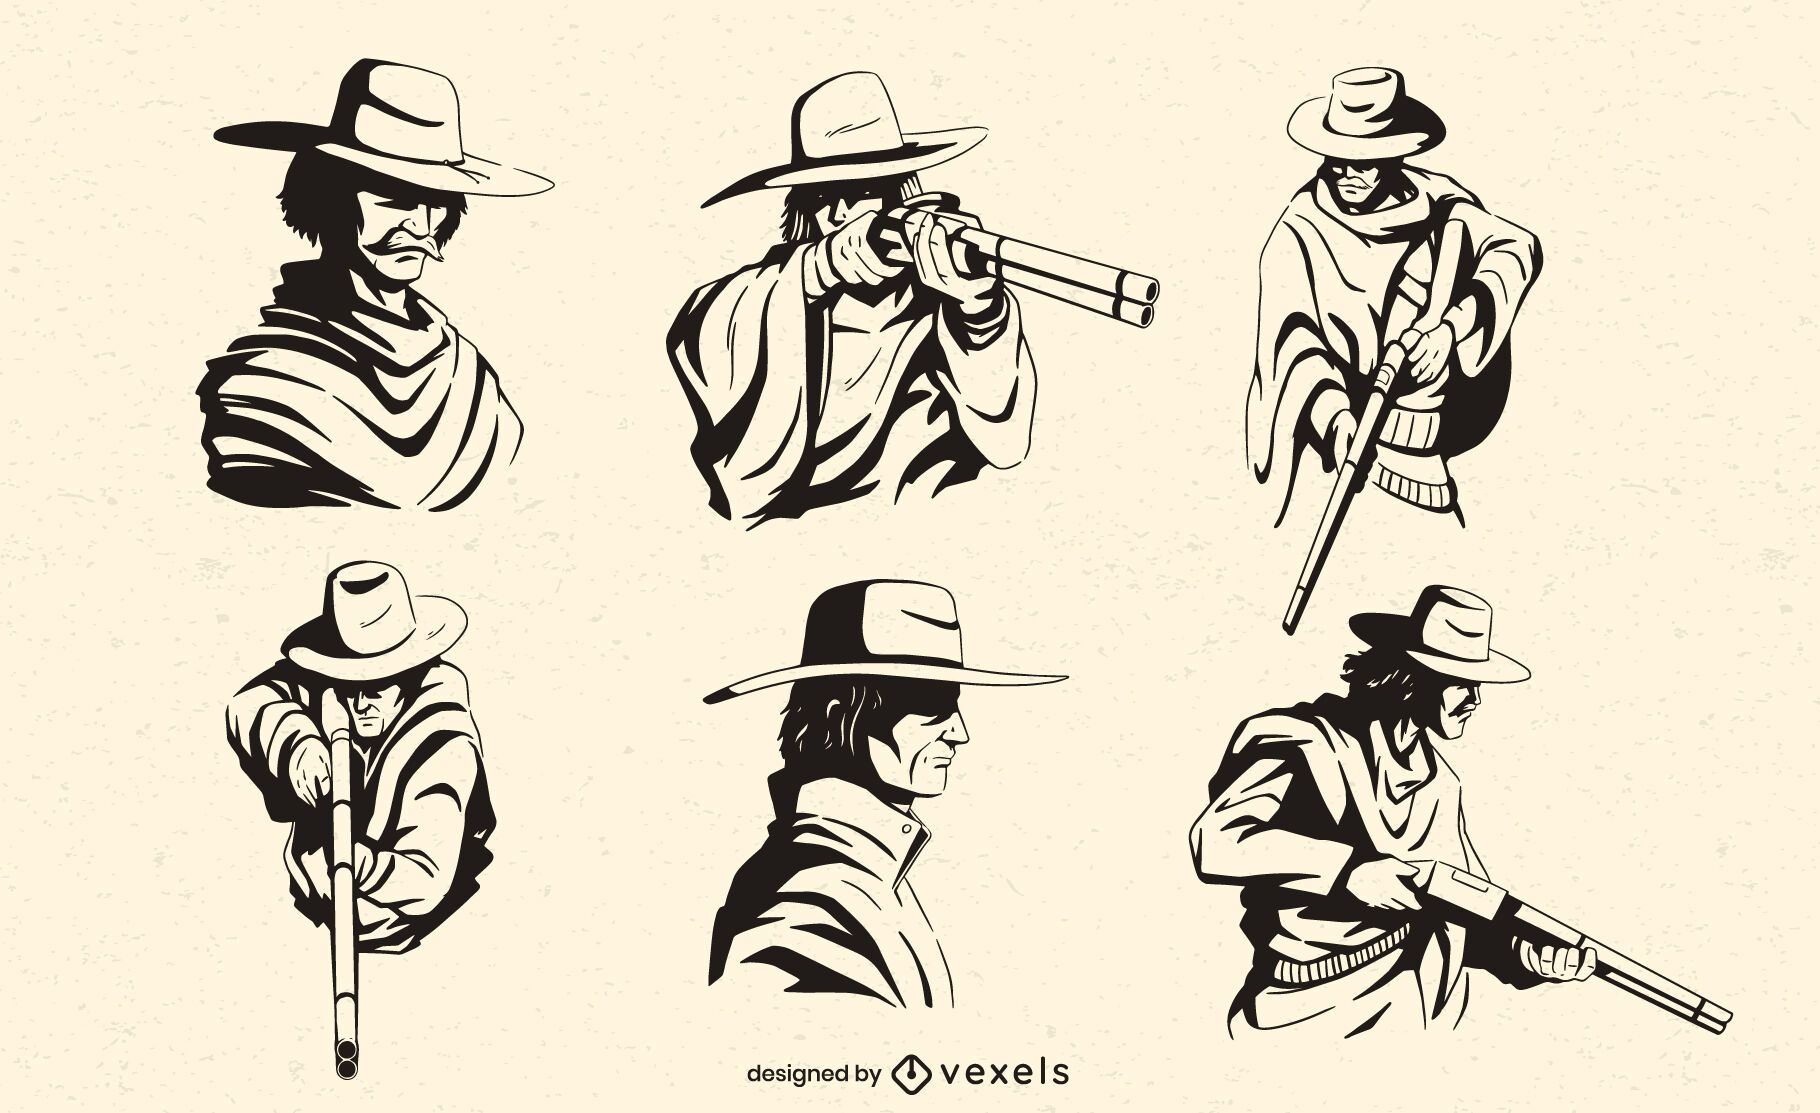 Cowboy characters with rifles set